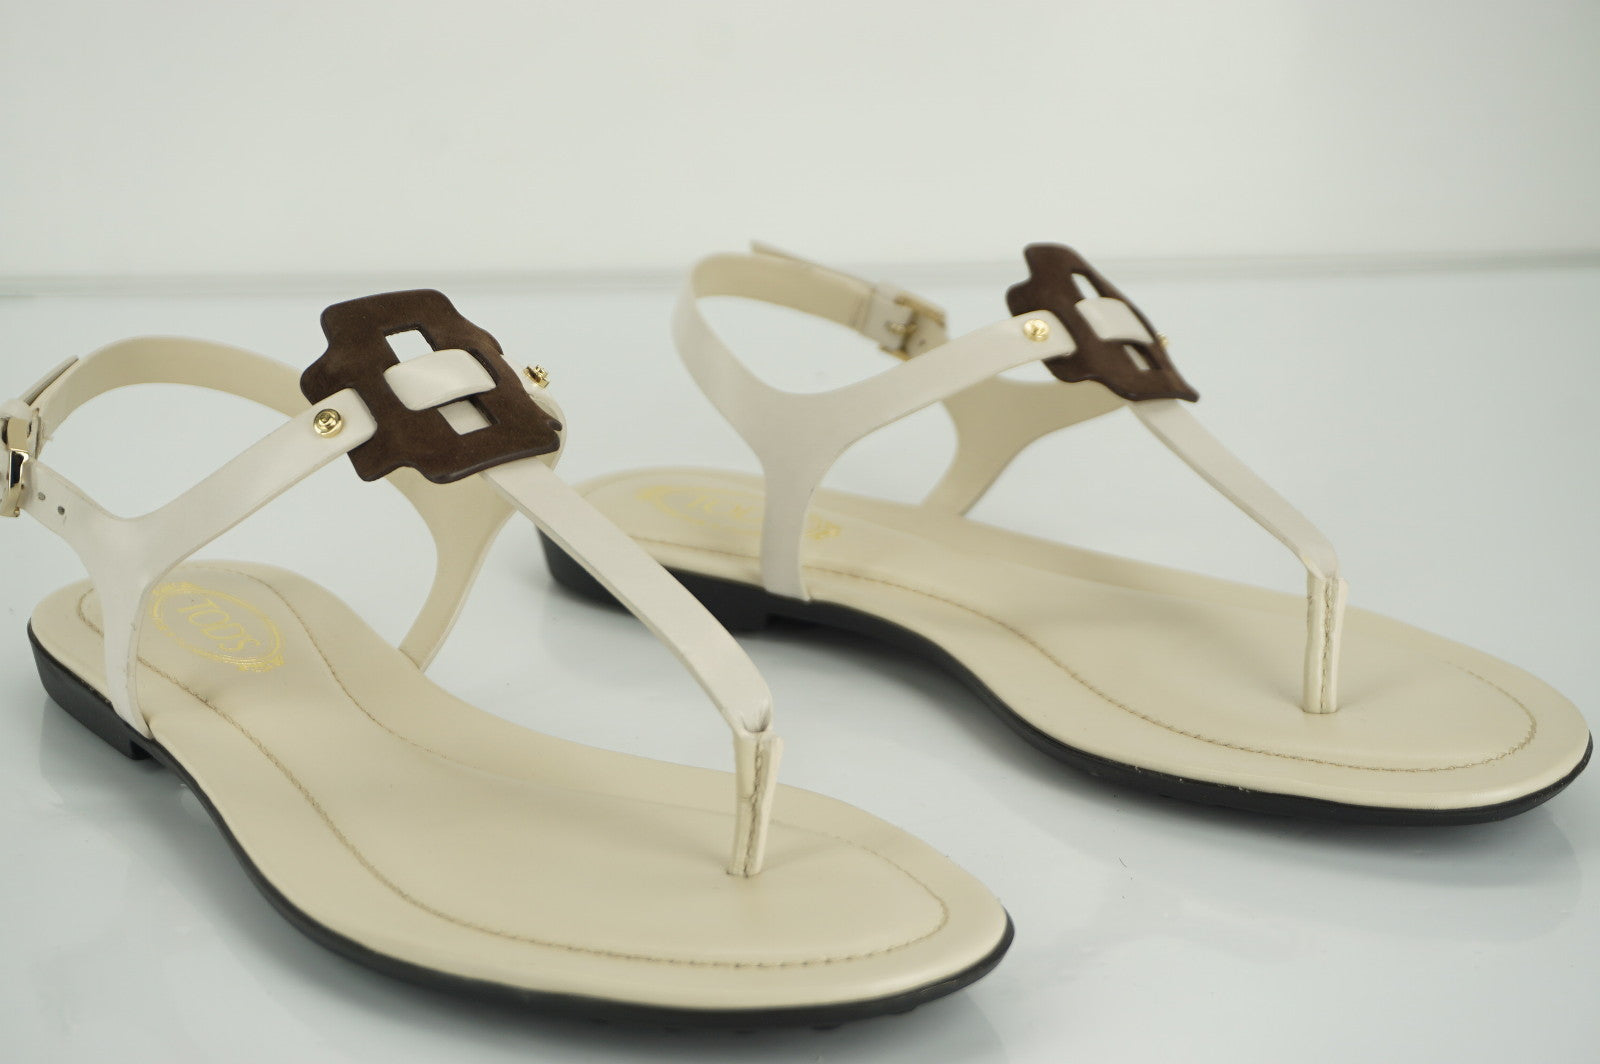 Tods Gomma T Strap Leather Thong Sandals size 36 Ankle Strap NIB $465